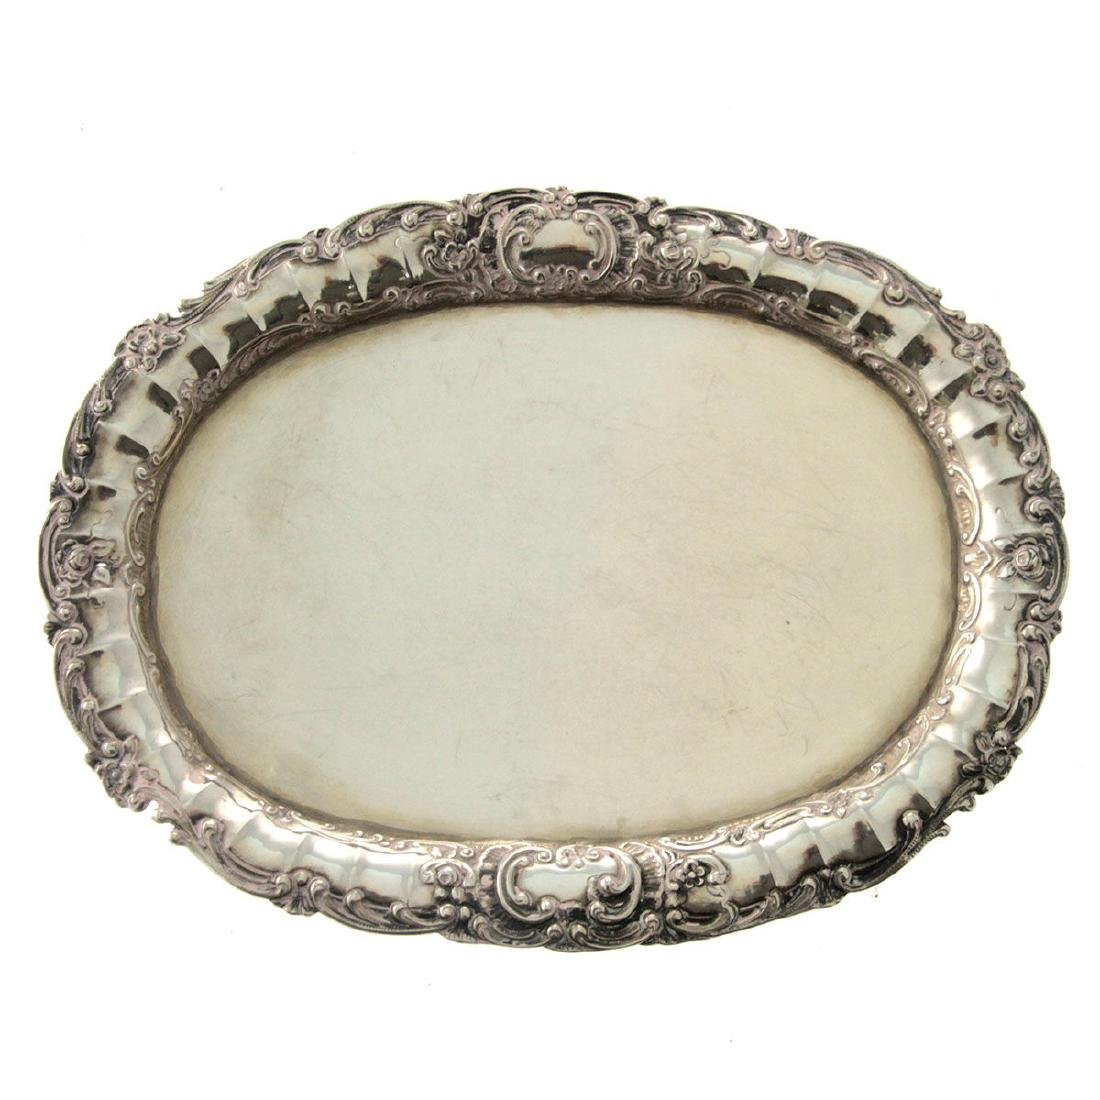 Silver Oval Tray, Germany, Circa 1900.